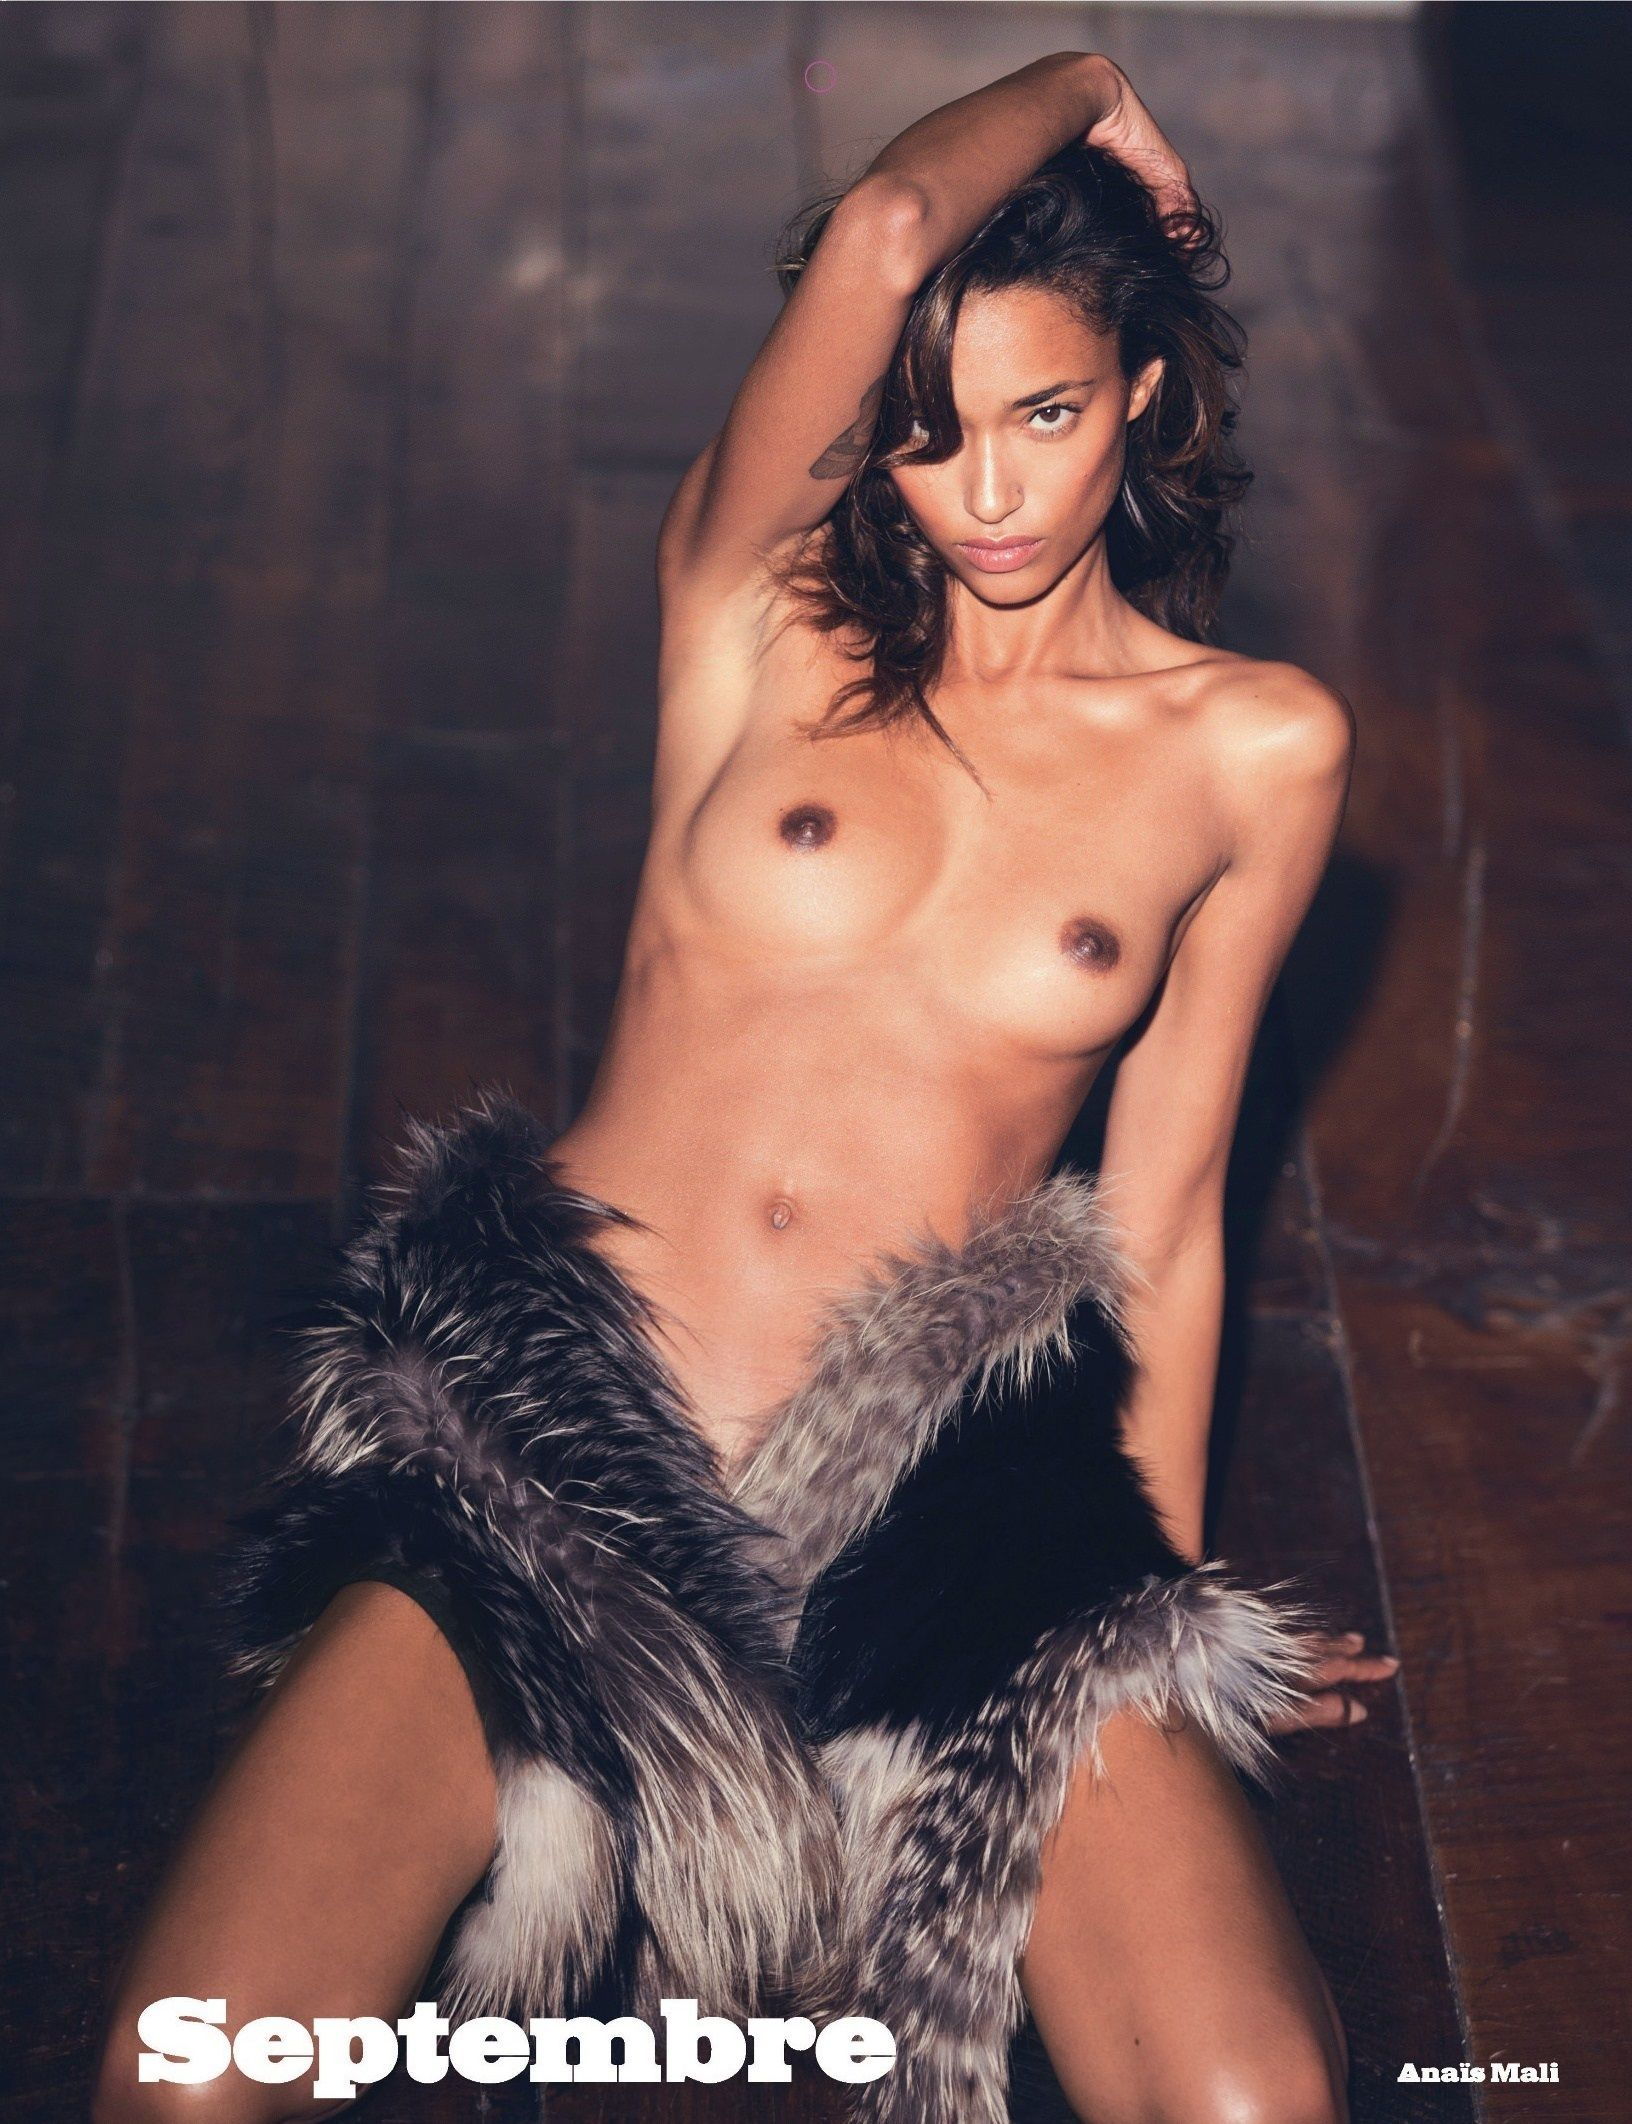 Anais Mali Topless Photos